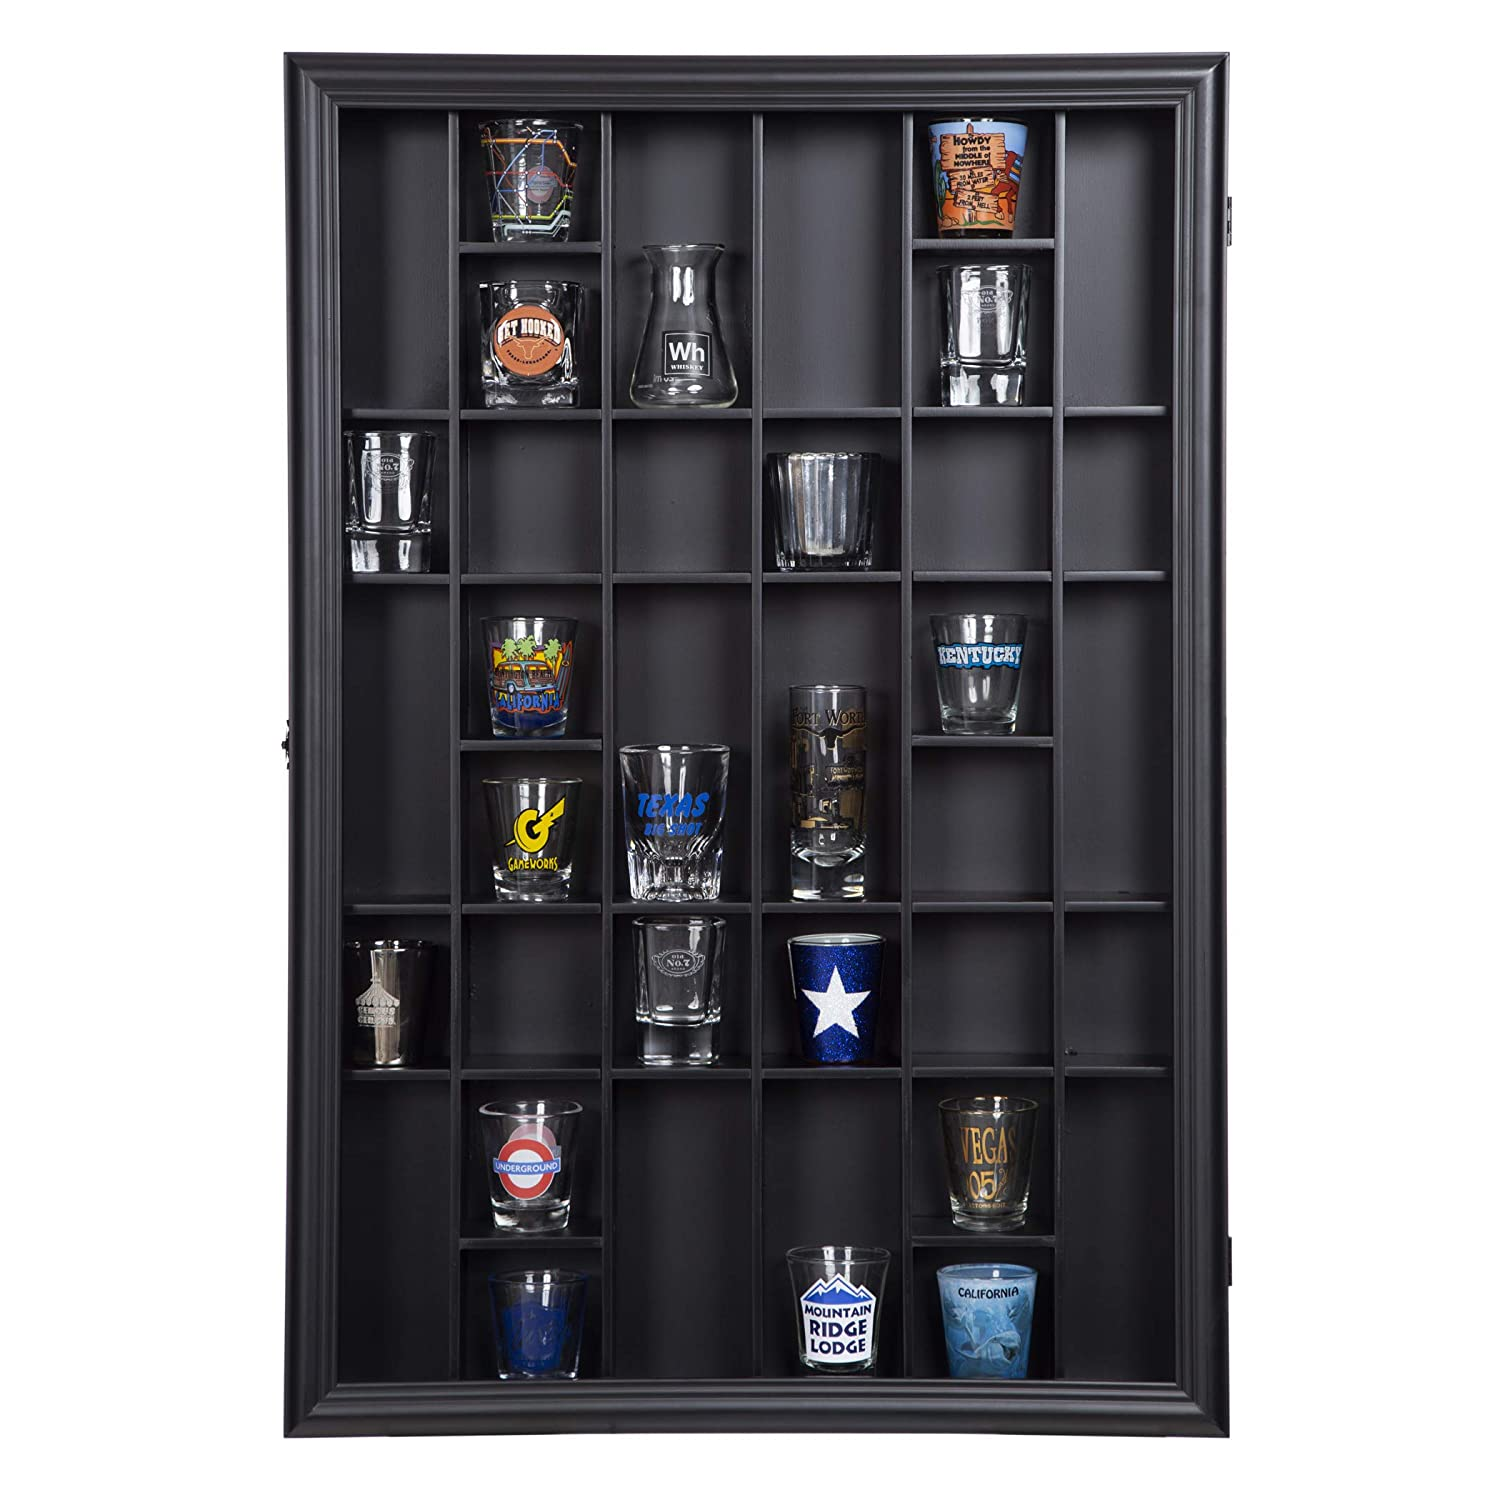 Gallery Solutions 17x21 Display Hinged Front, Black Shot Glass Case OD 17.8875X21.3125,